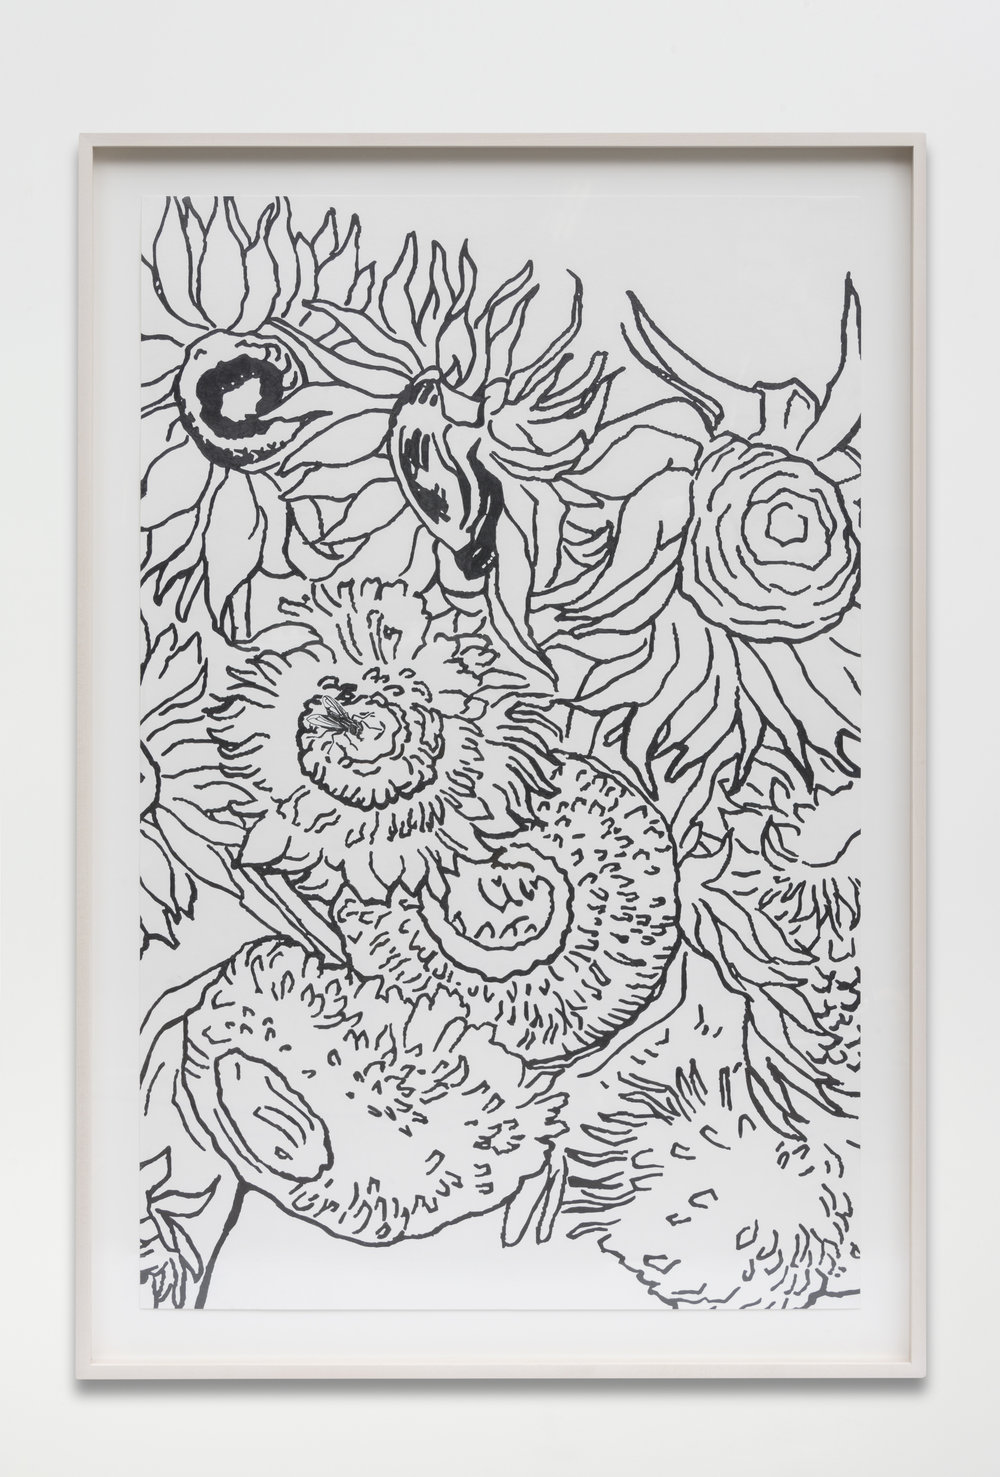 Nathan Mabry, Bouquet (For Vincent), 2017 graphite on paper 120,7 x 82,5 x 5 cm - 47 1/2 x 32 1/2 x 2 inches (framed)